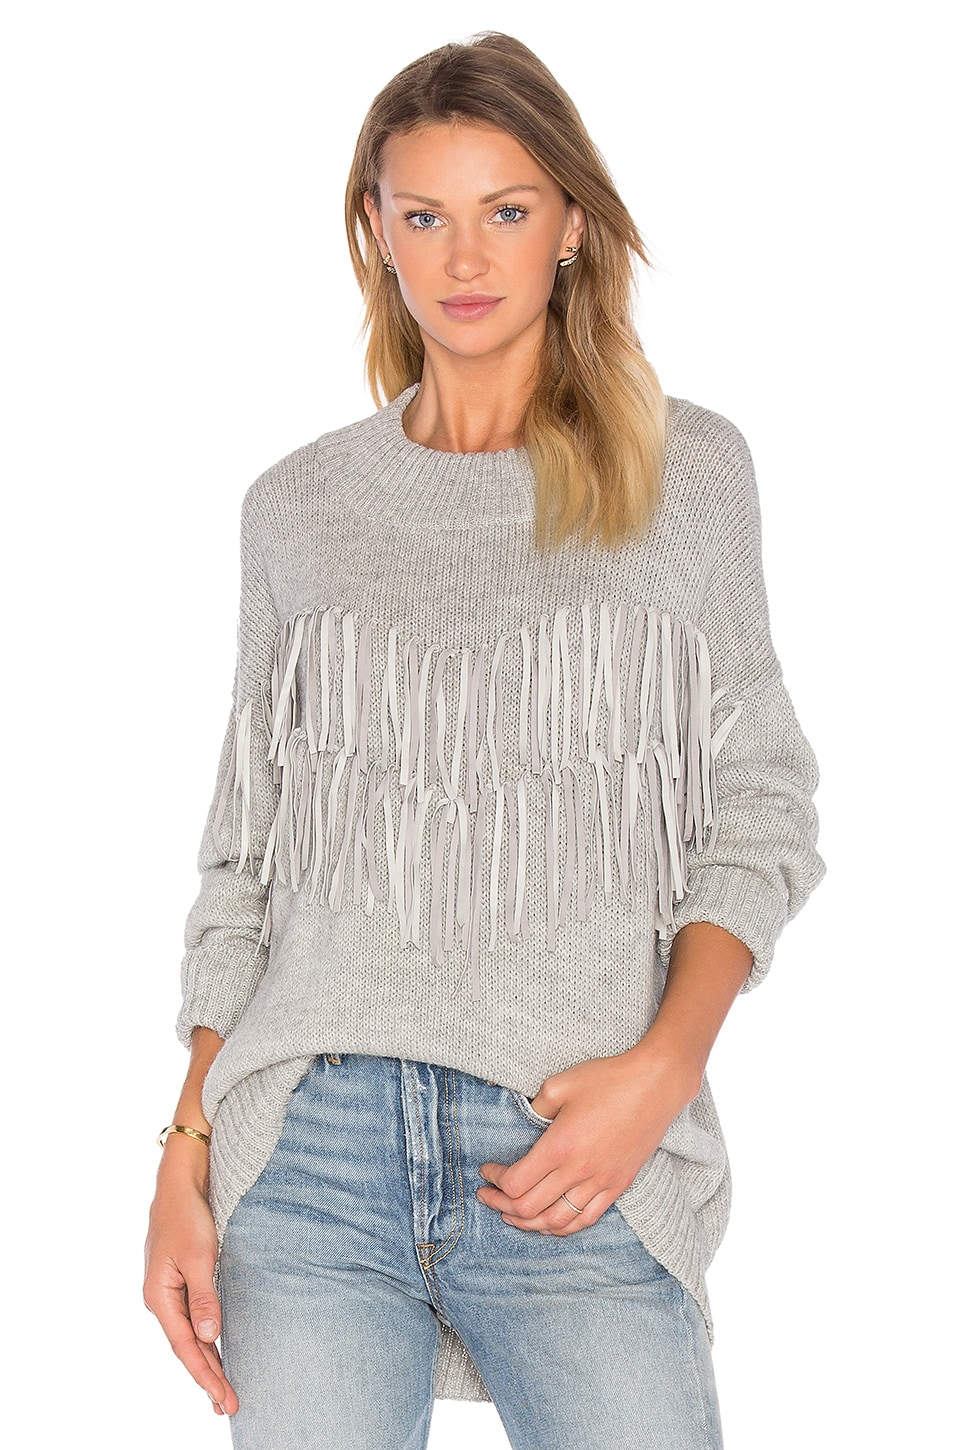 Tayi Fringe Sweater by AYNI